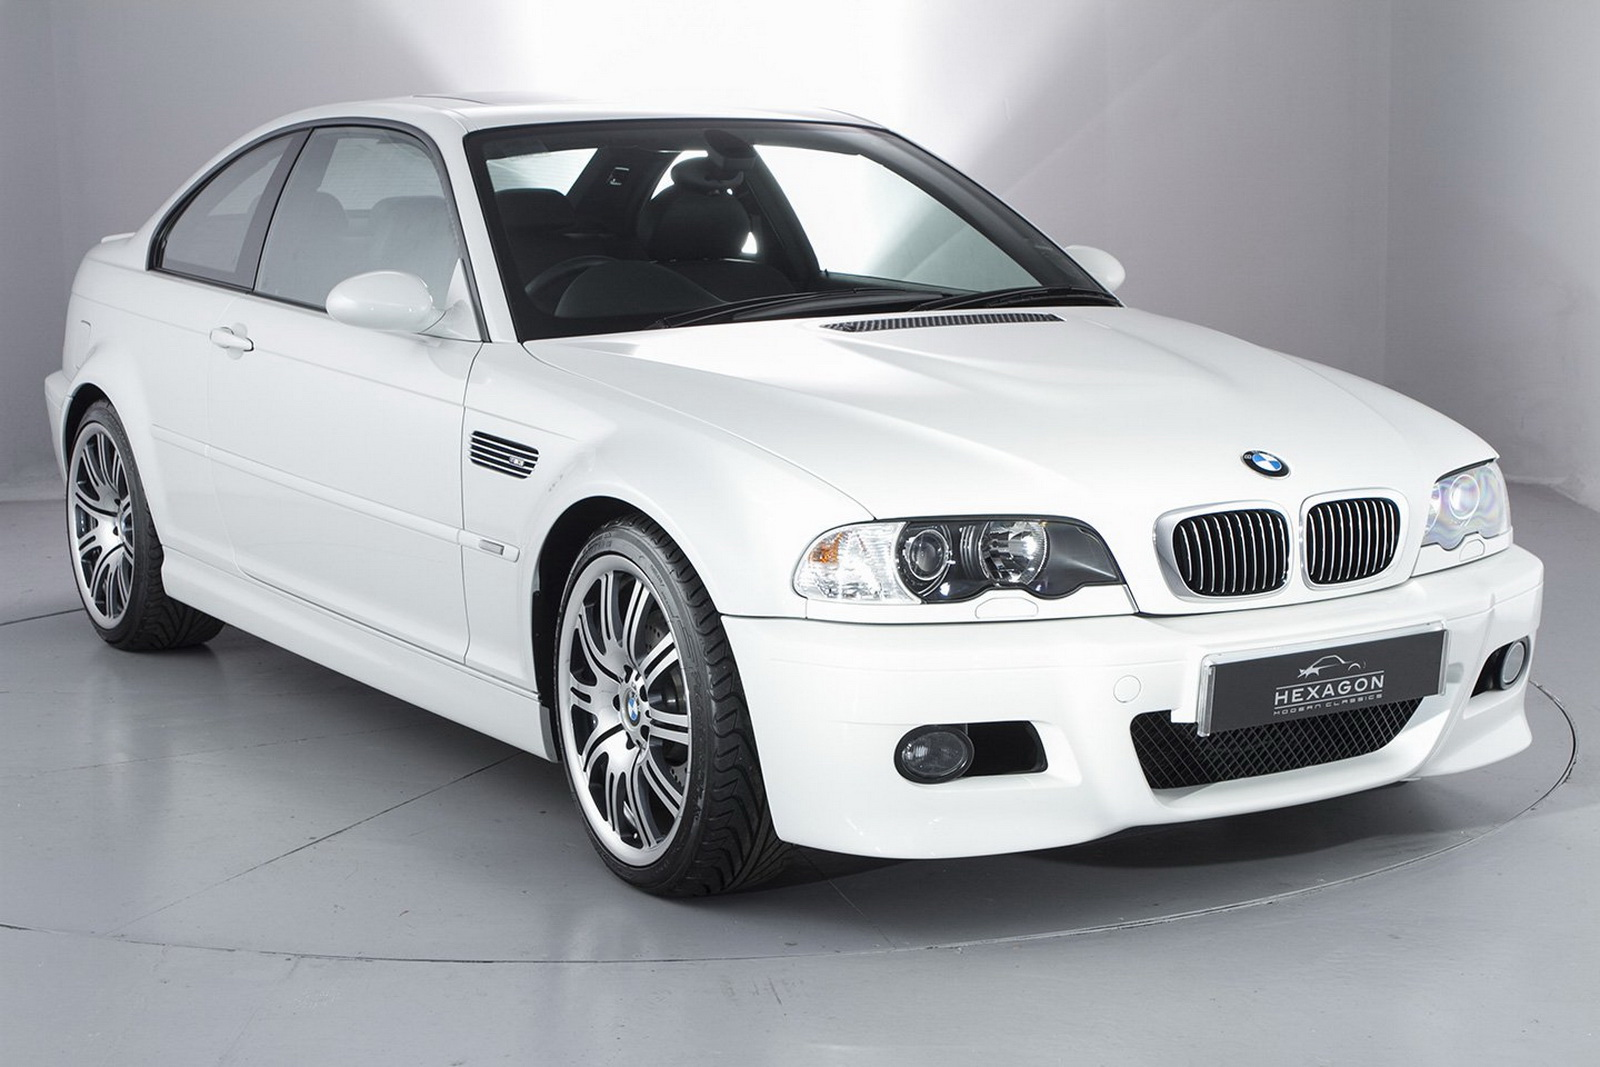 barely used alpine white bmw e46 m3 looking for a new home carscoops. Black Bedroom Furniture Sets. Home Design Ideas